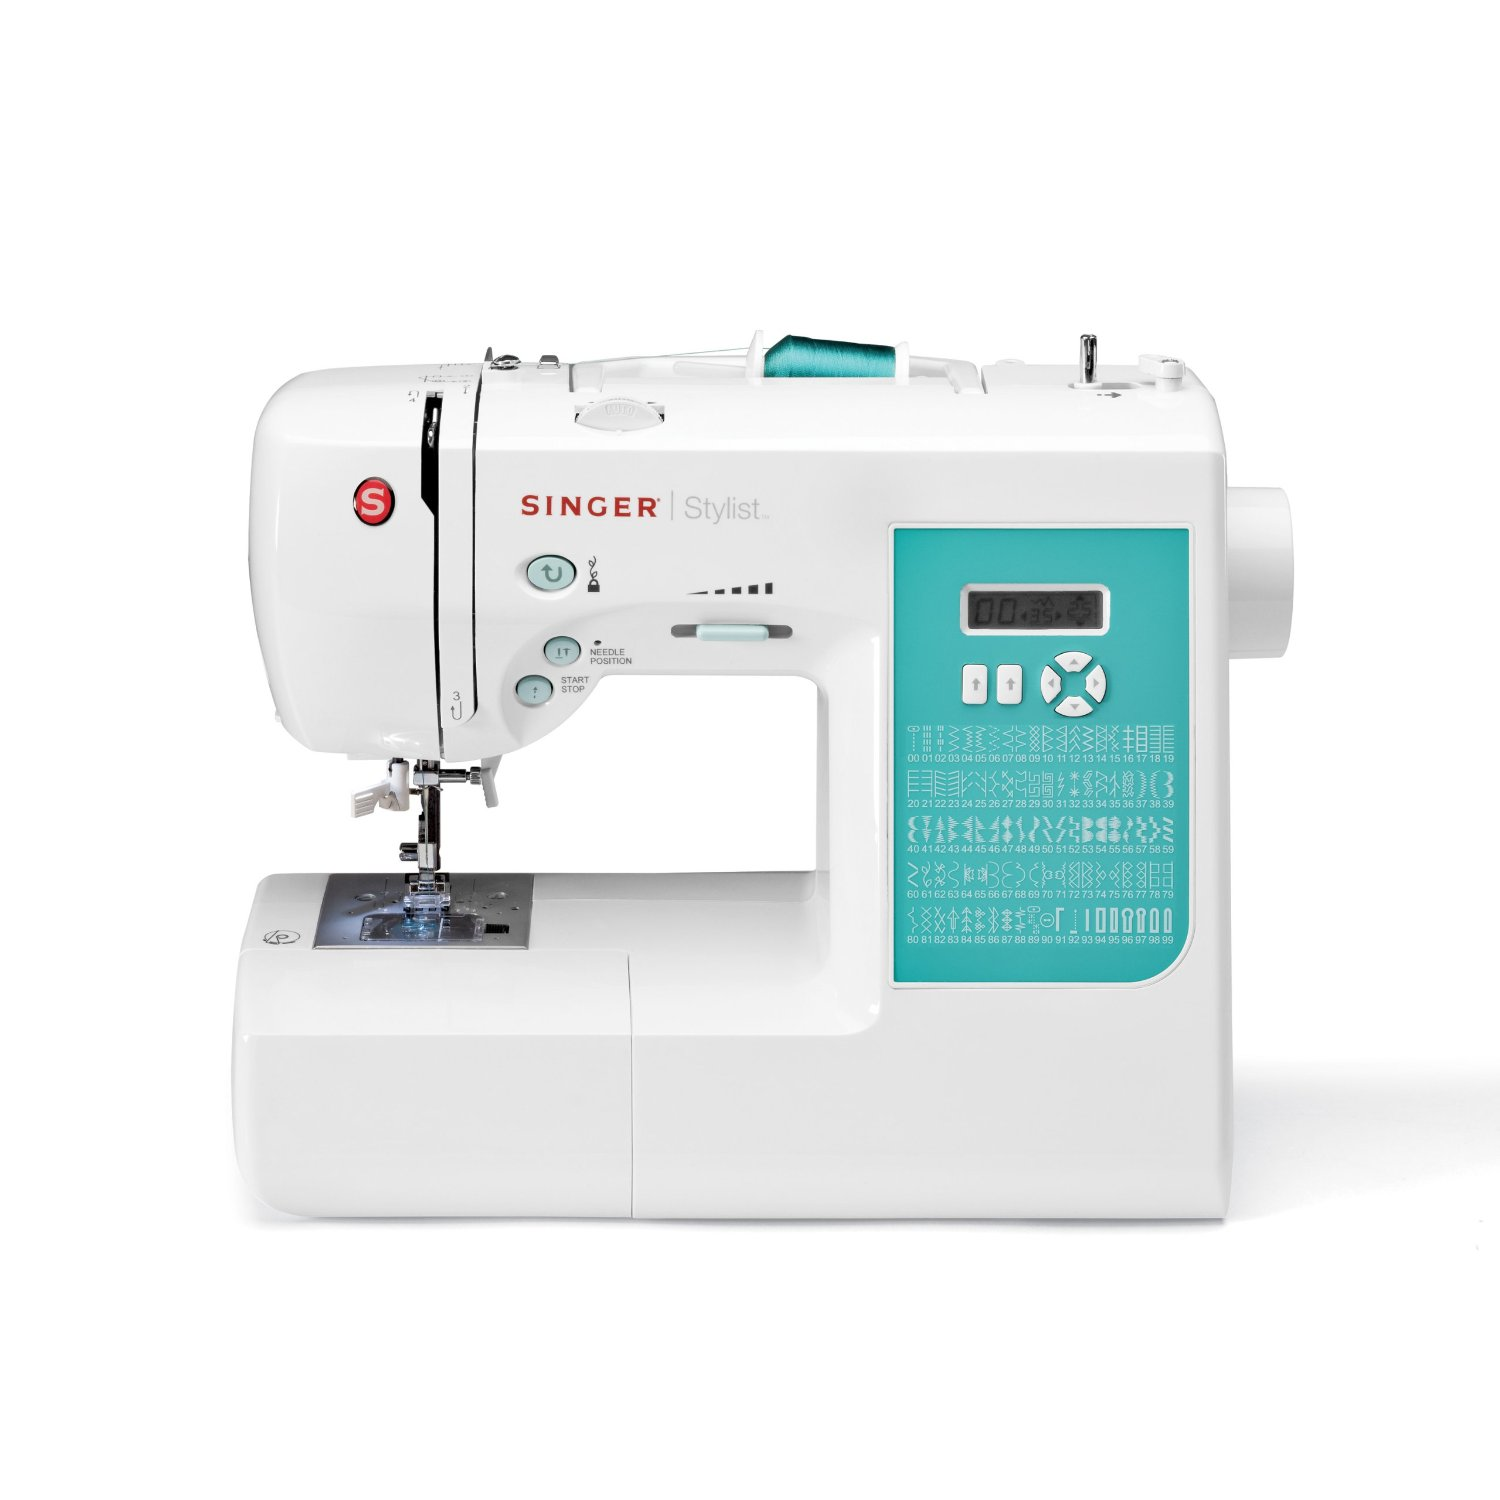 The Singer 7258 is a computerized sewing machine that is easy enough for a beginner